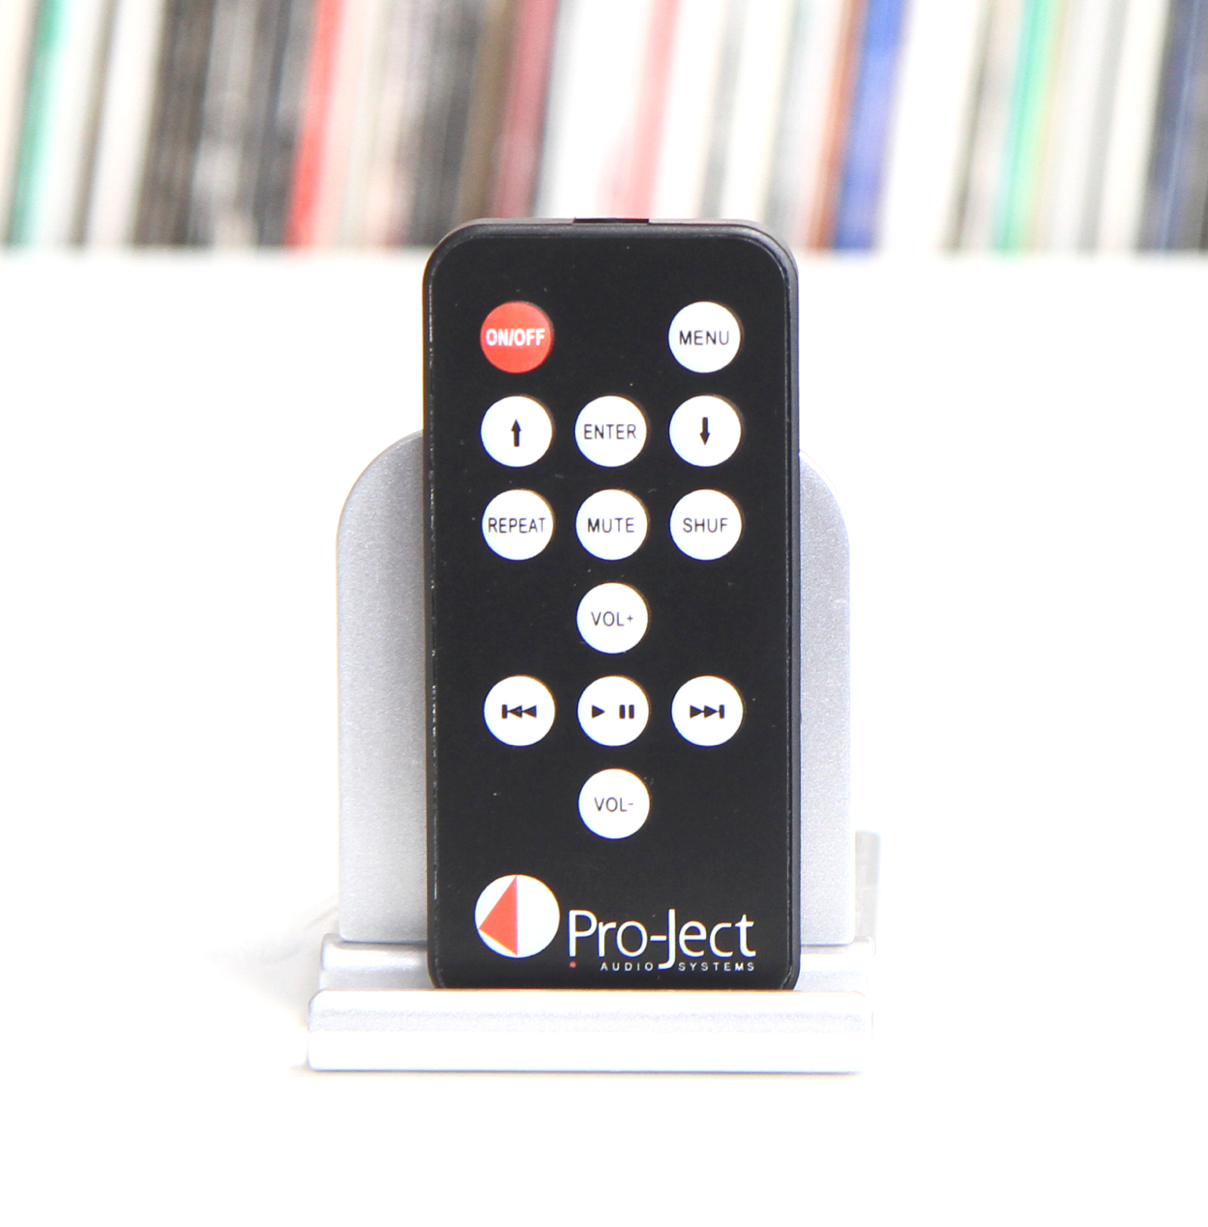 PRO-JECT CONTROL-IT 106